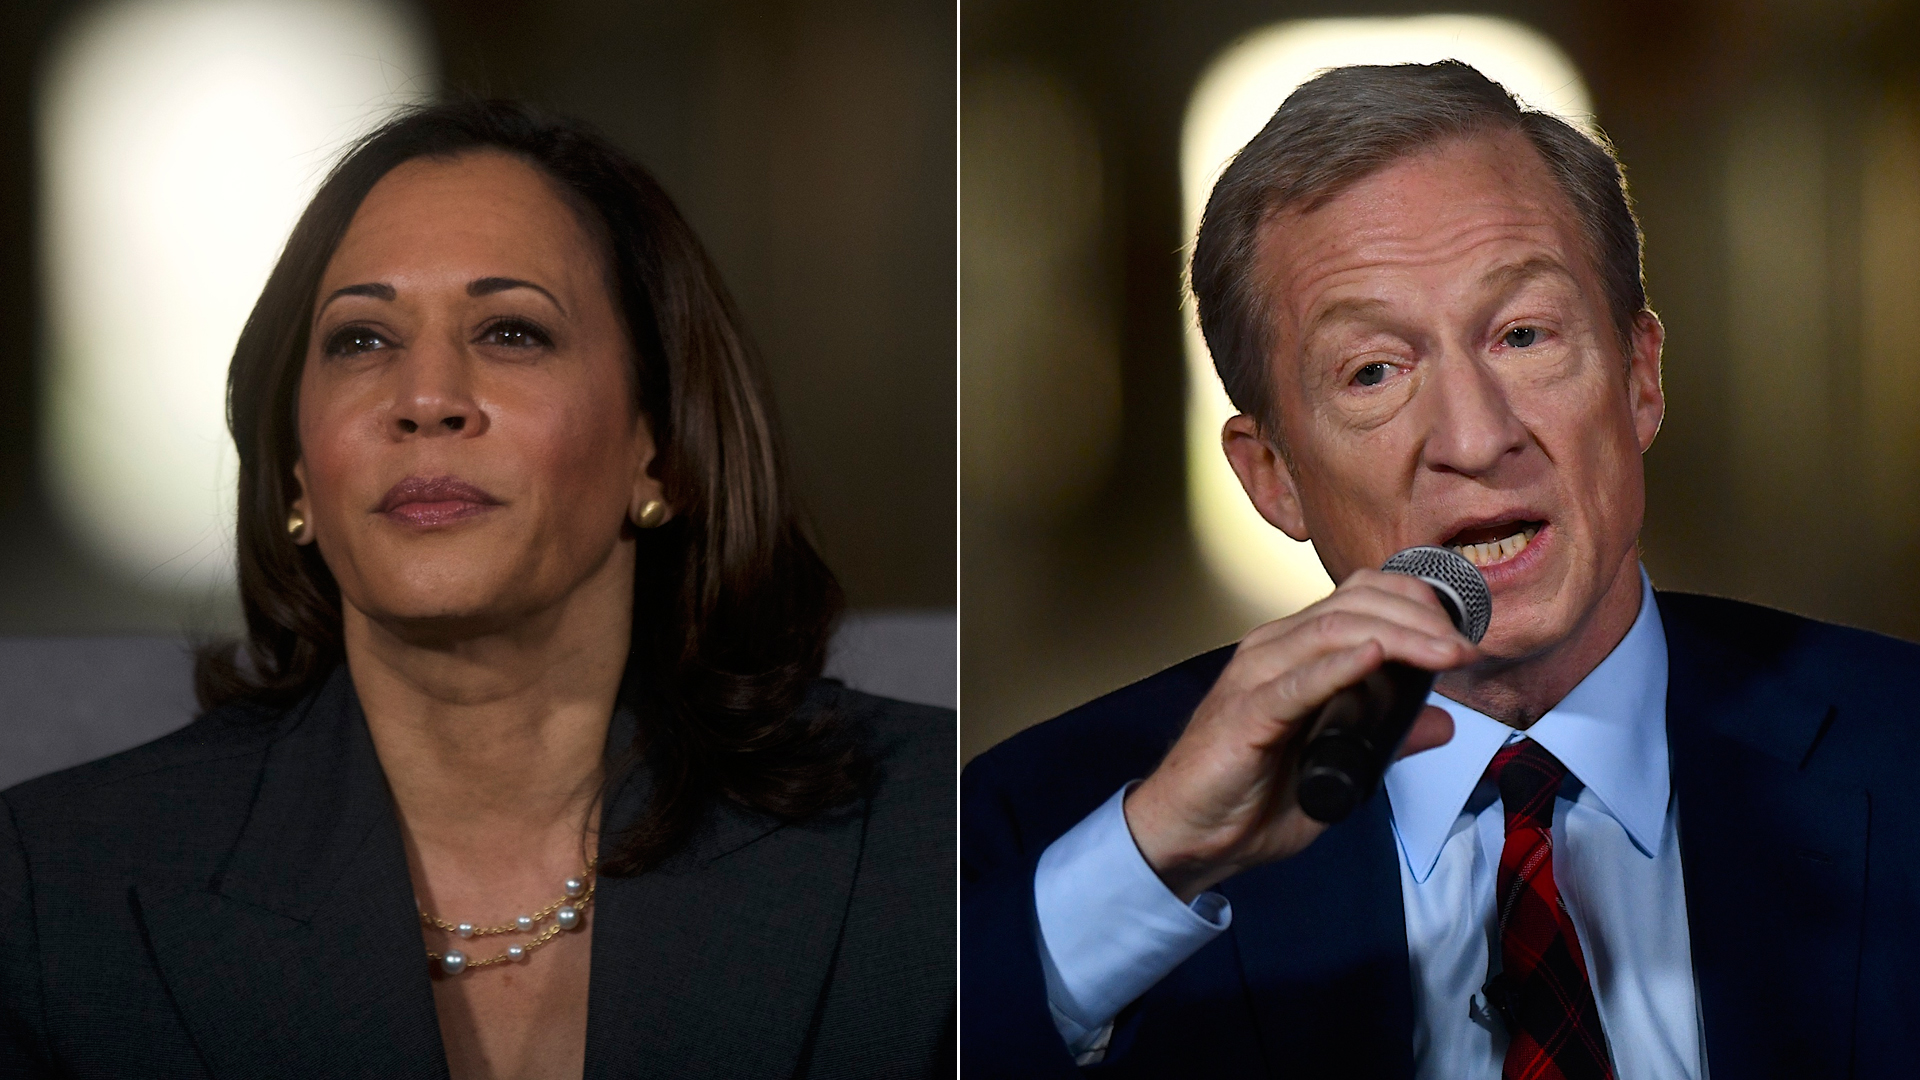 Sen. Kamala Harris, left, and Tom Steyer appear at a town hall at the Eastern State Penitentiary on Oct. 28, 2019 in Philadelphia, Pennsylvania. (Credit: Mark Makela/Getty Images)